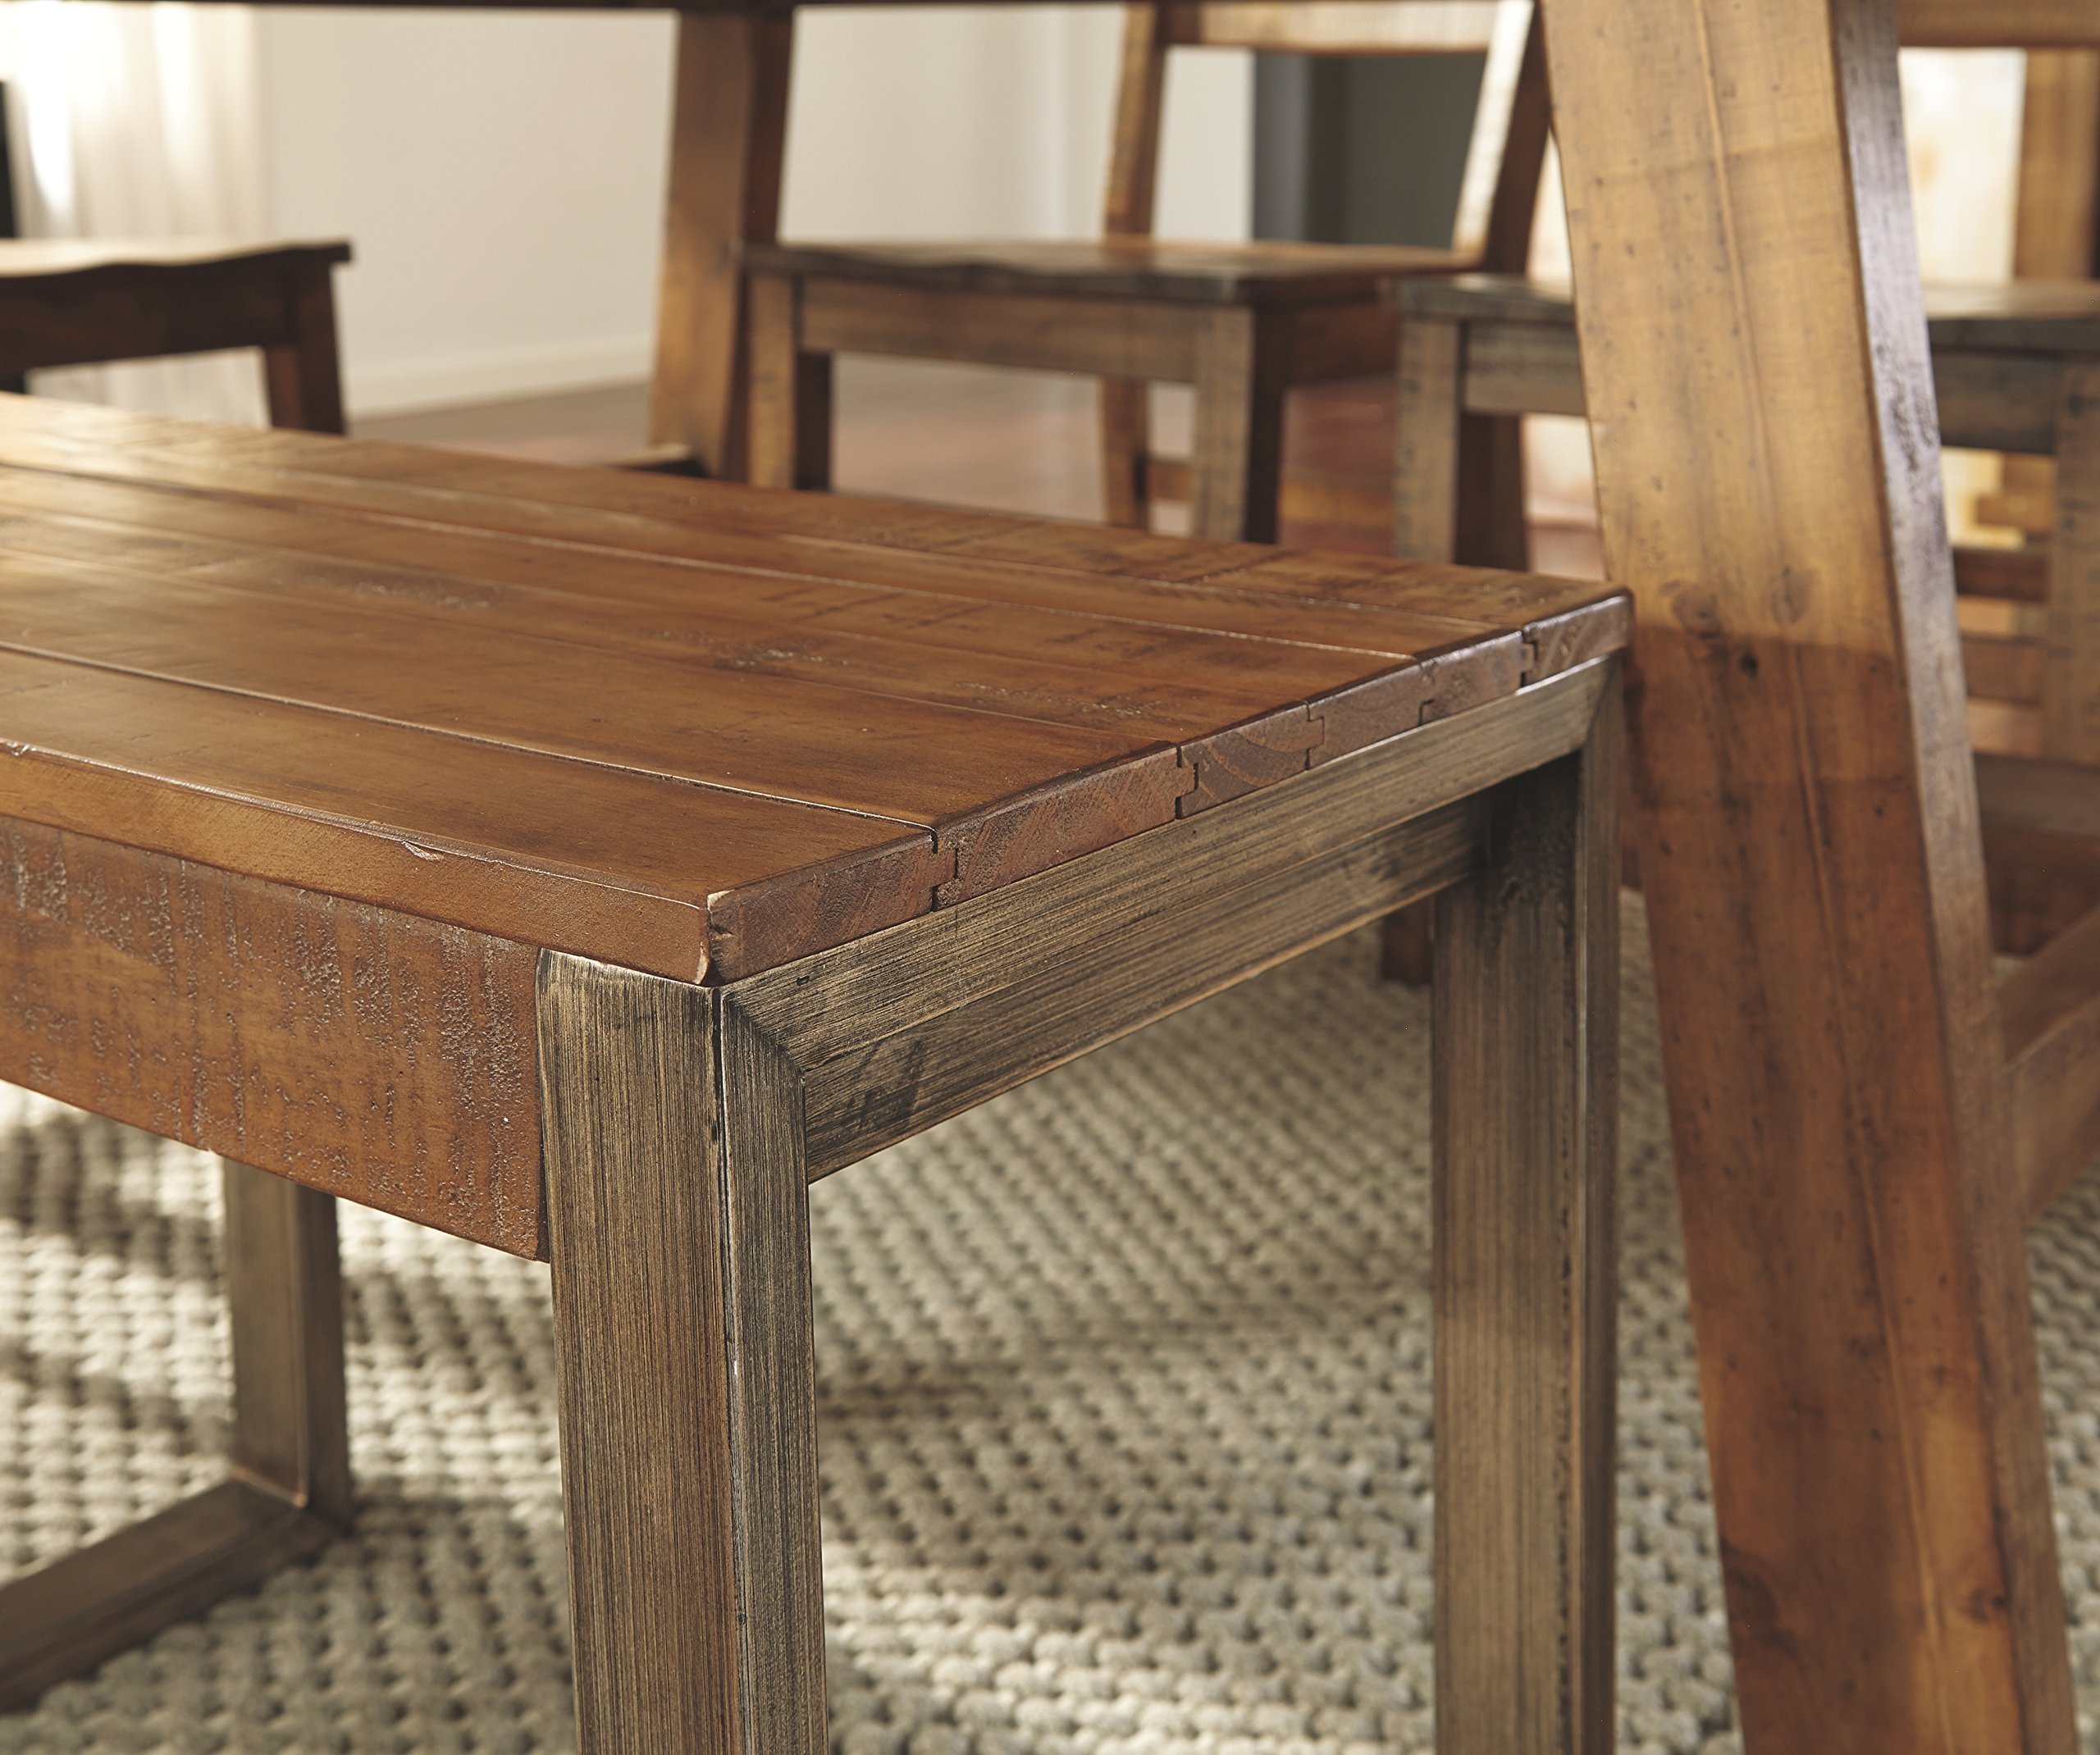 Ashley Furniture Signature Design - Dondie Dining Room Bench - Solid Pine Wood with Distressed Finish - Warm Brown by Signature Design by Ashley (Image #3)